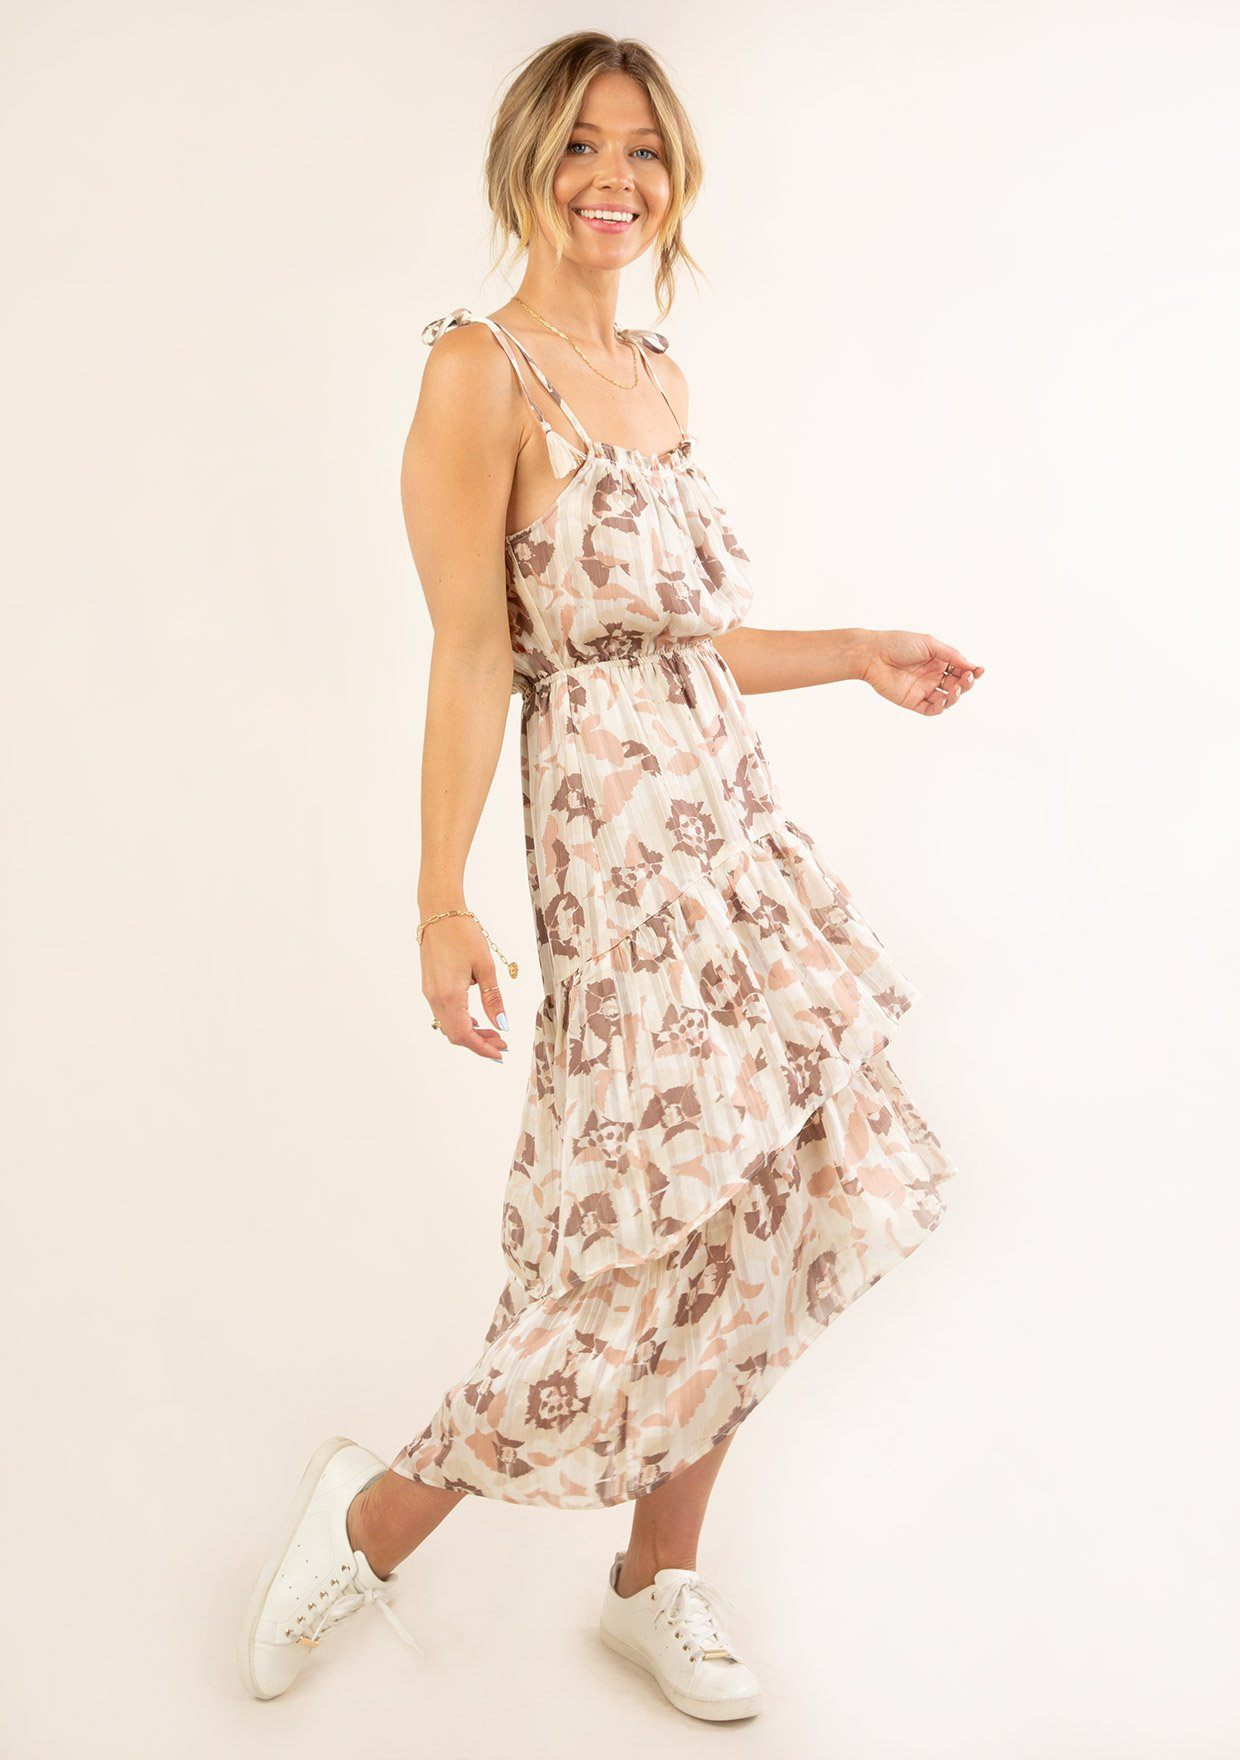 [Color: Cream Blush] Ultra pretty geo floral print tank top midi dress. Featuring an elastic waist detail for definition.